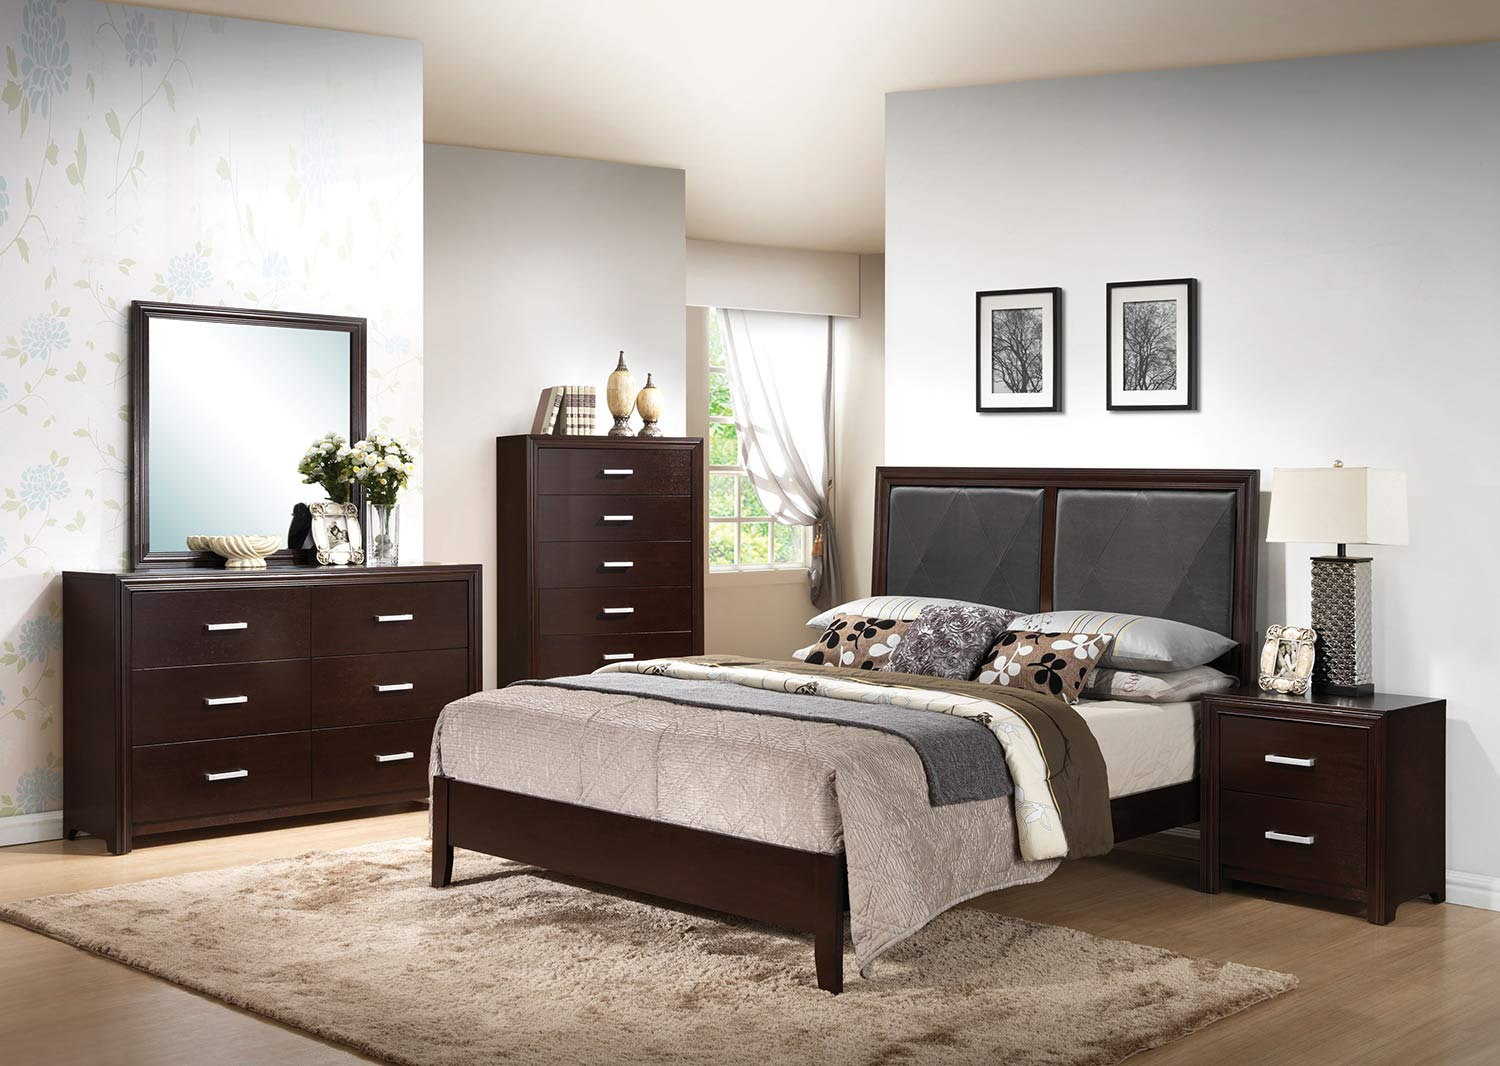 Acme Ajay Bedroom Set - Black Vinyl/Espresso